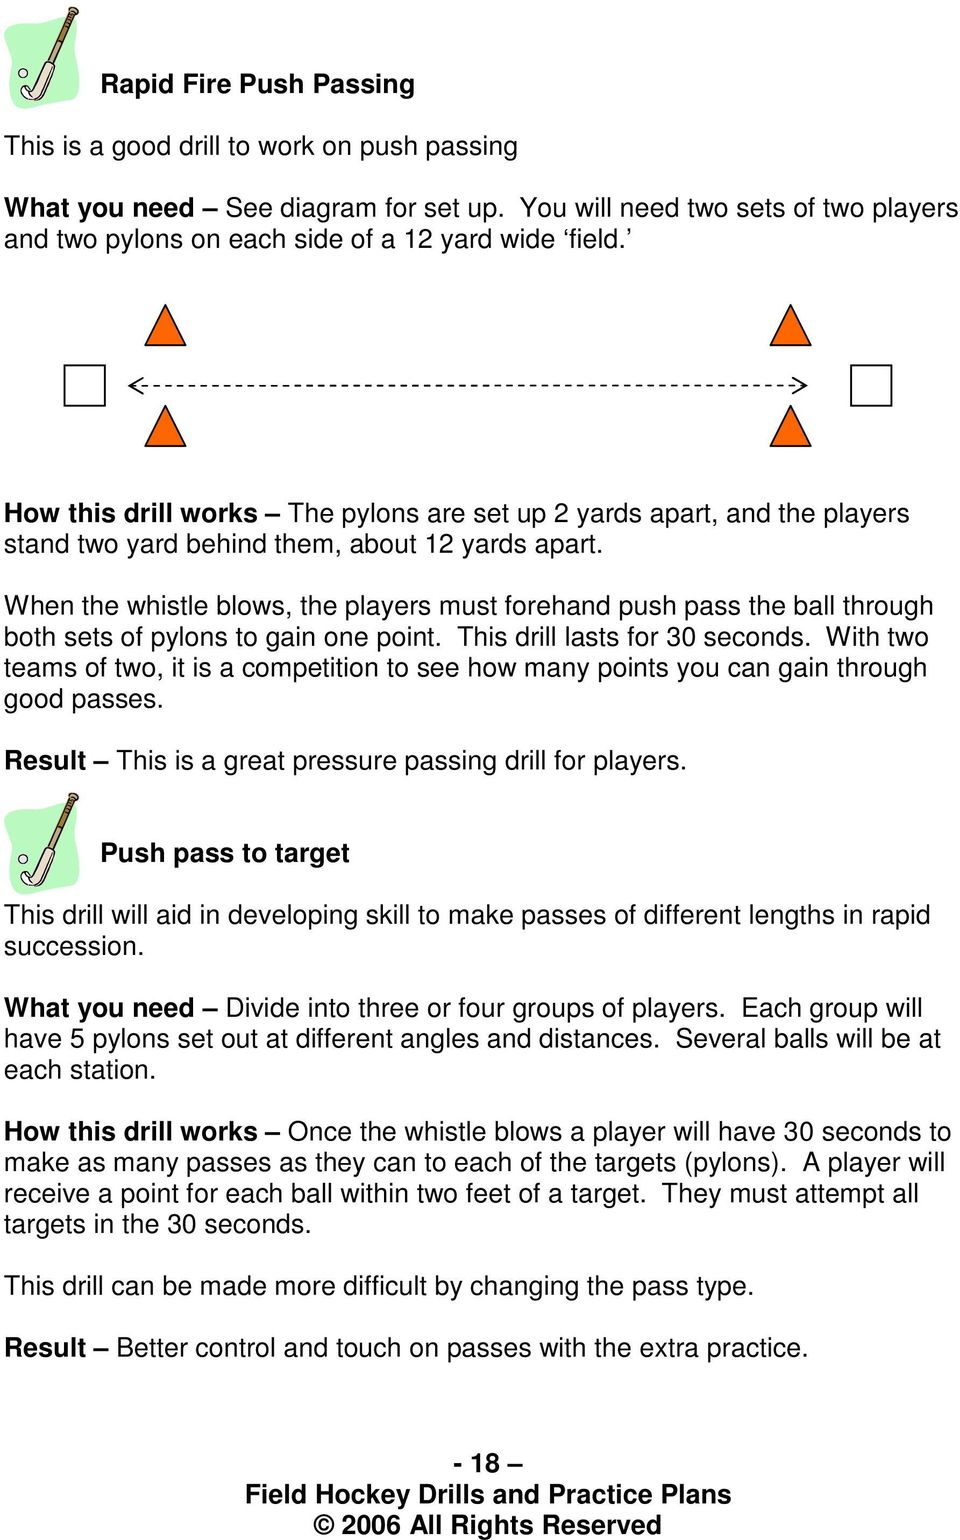 When the whistle blows, the players must forehand push pass the ball through both sets of pylons to gain one point. This drill lasts for 30 seconds.